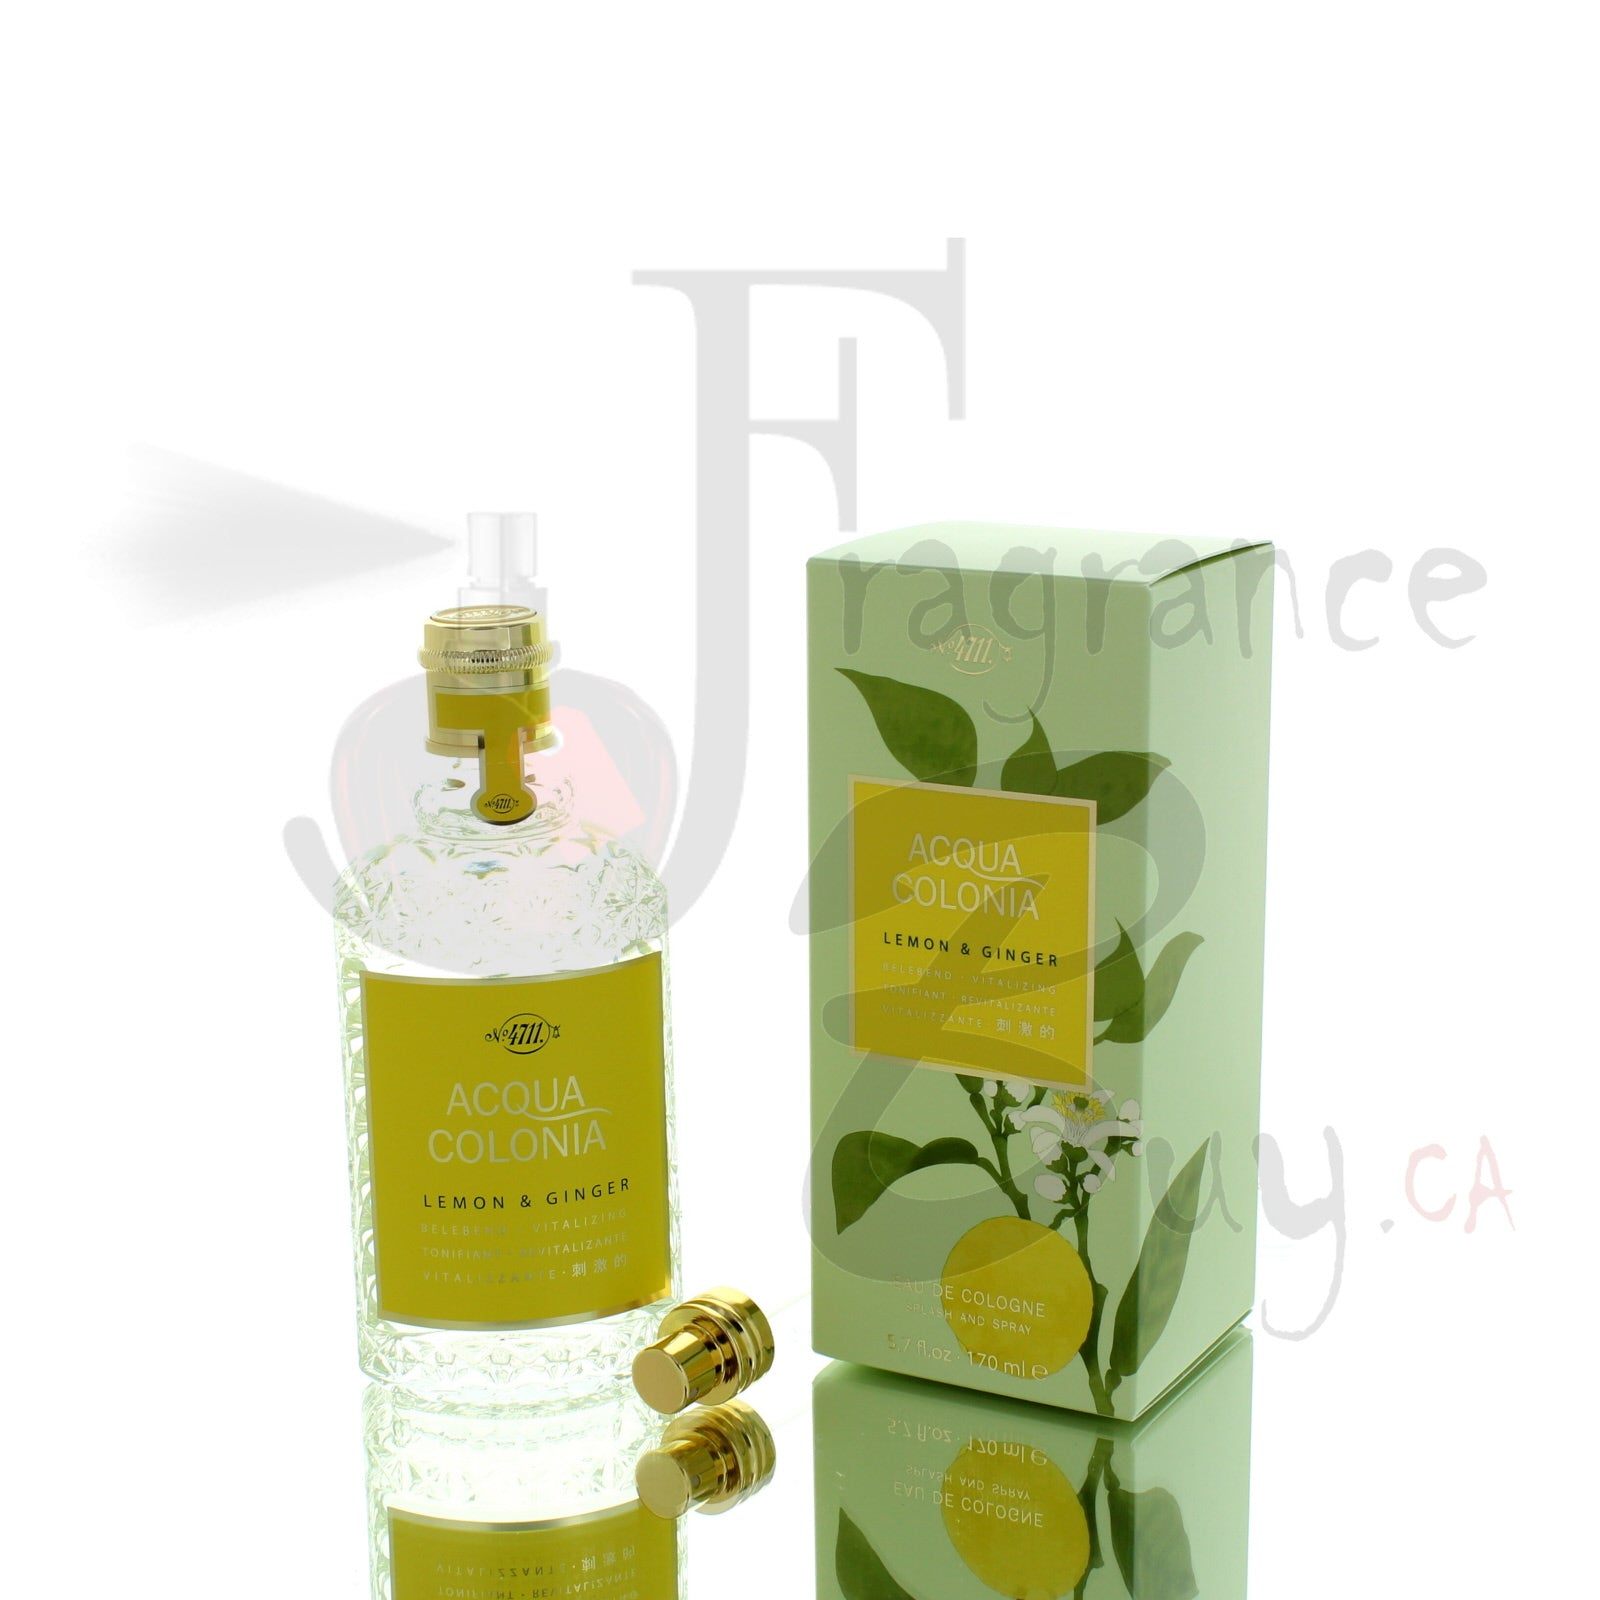 4711 Acqua Colonia Lemon & Ginger For Man/Woman